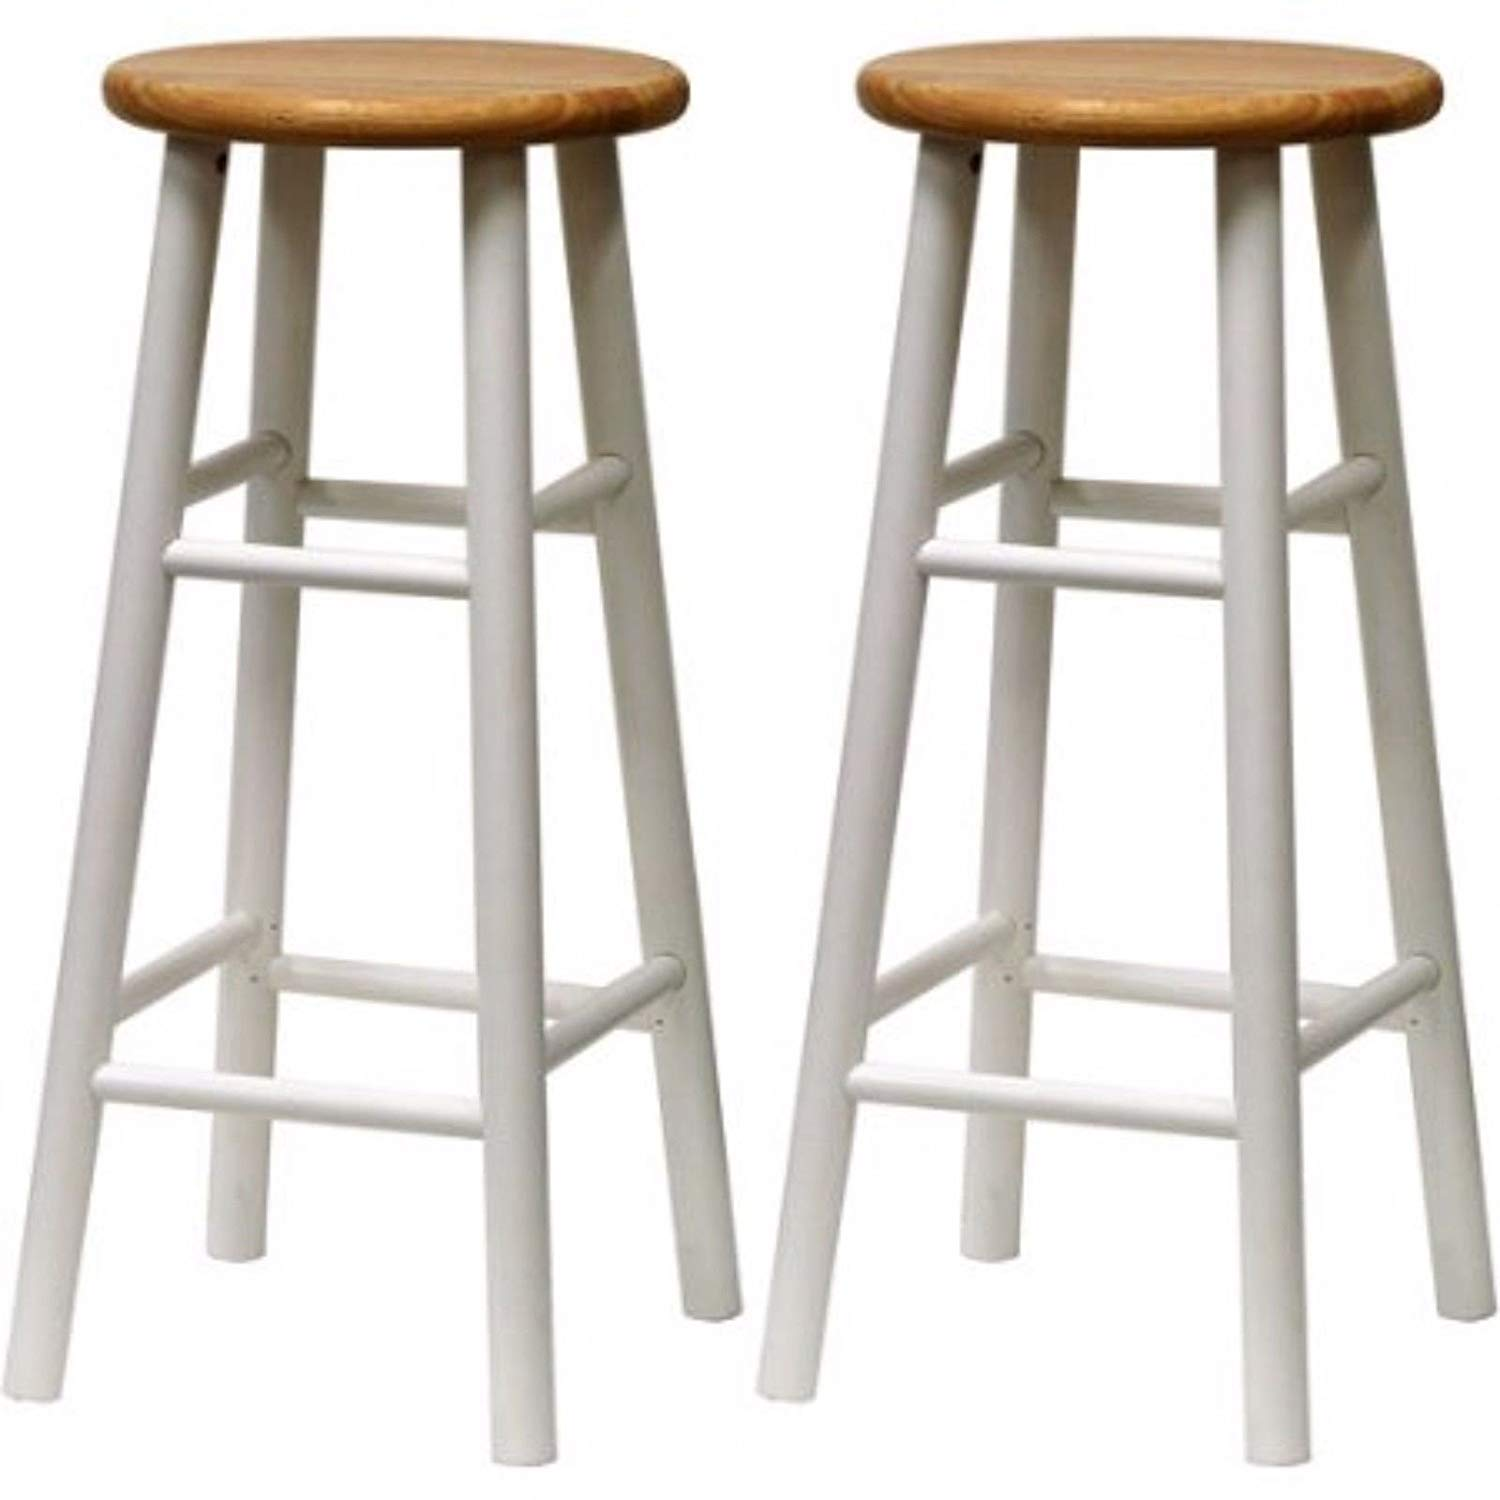 Cheap 32 Inch Bar Stools Find 32 Inch Bar Stools Deals On Line At